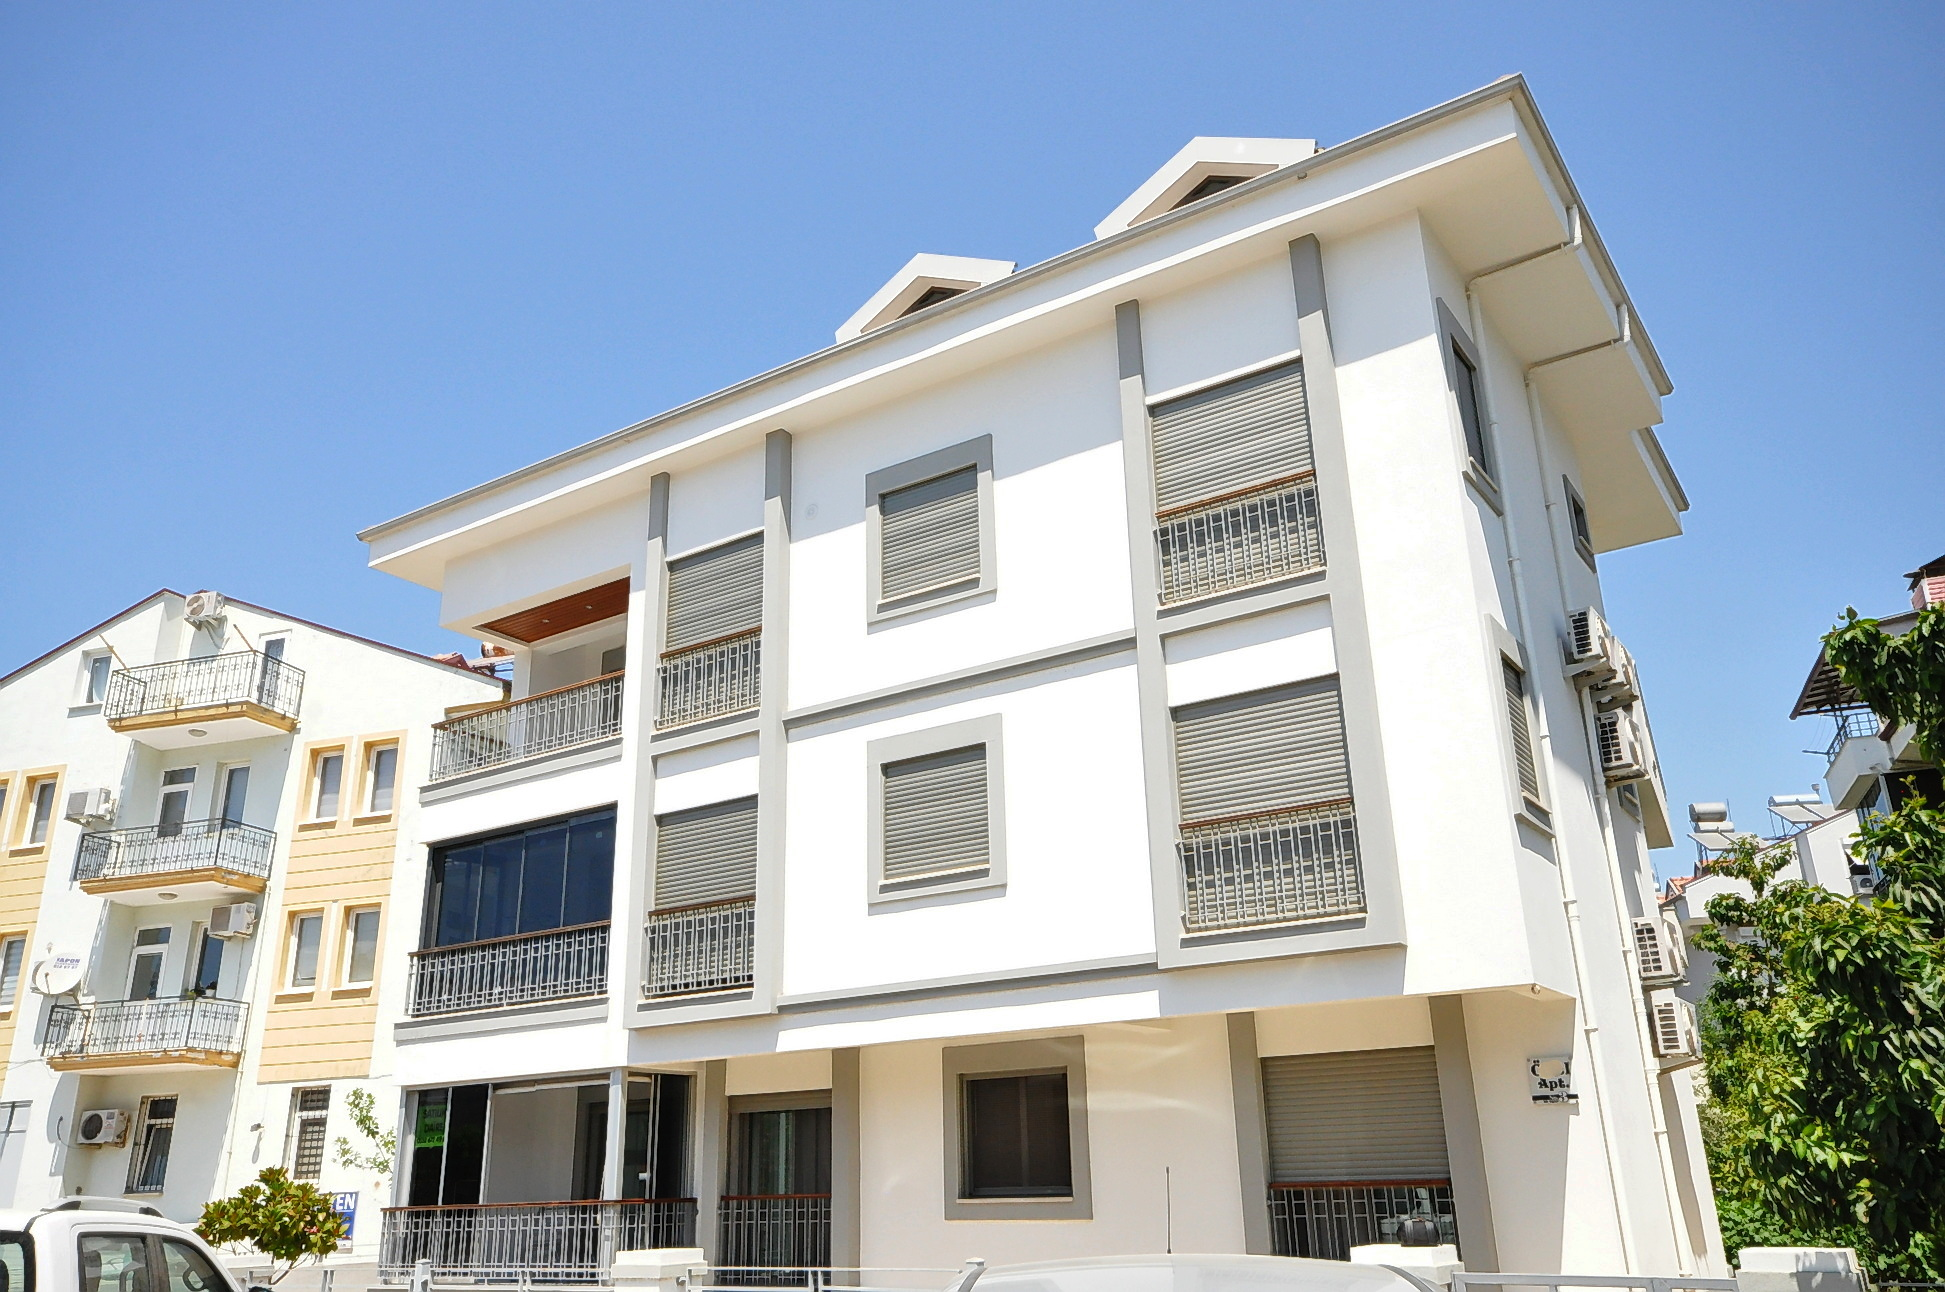 2 Bedroom Beautiful Apartment For Sale